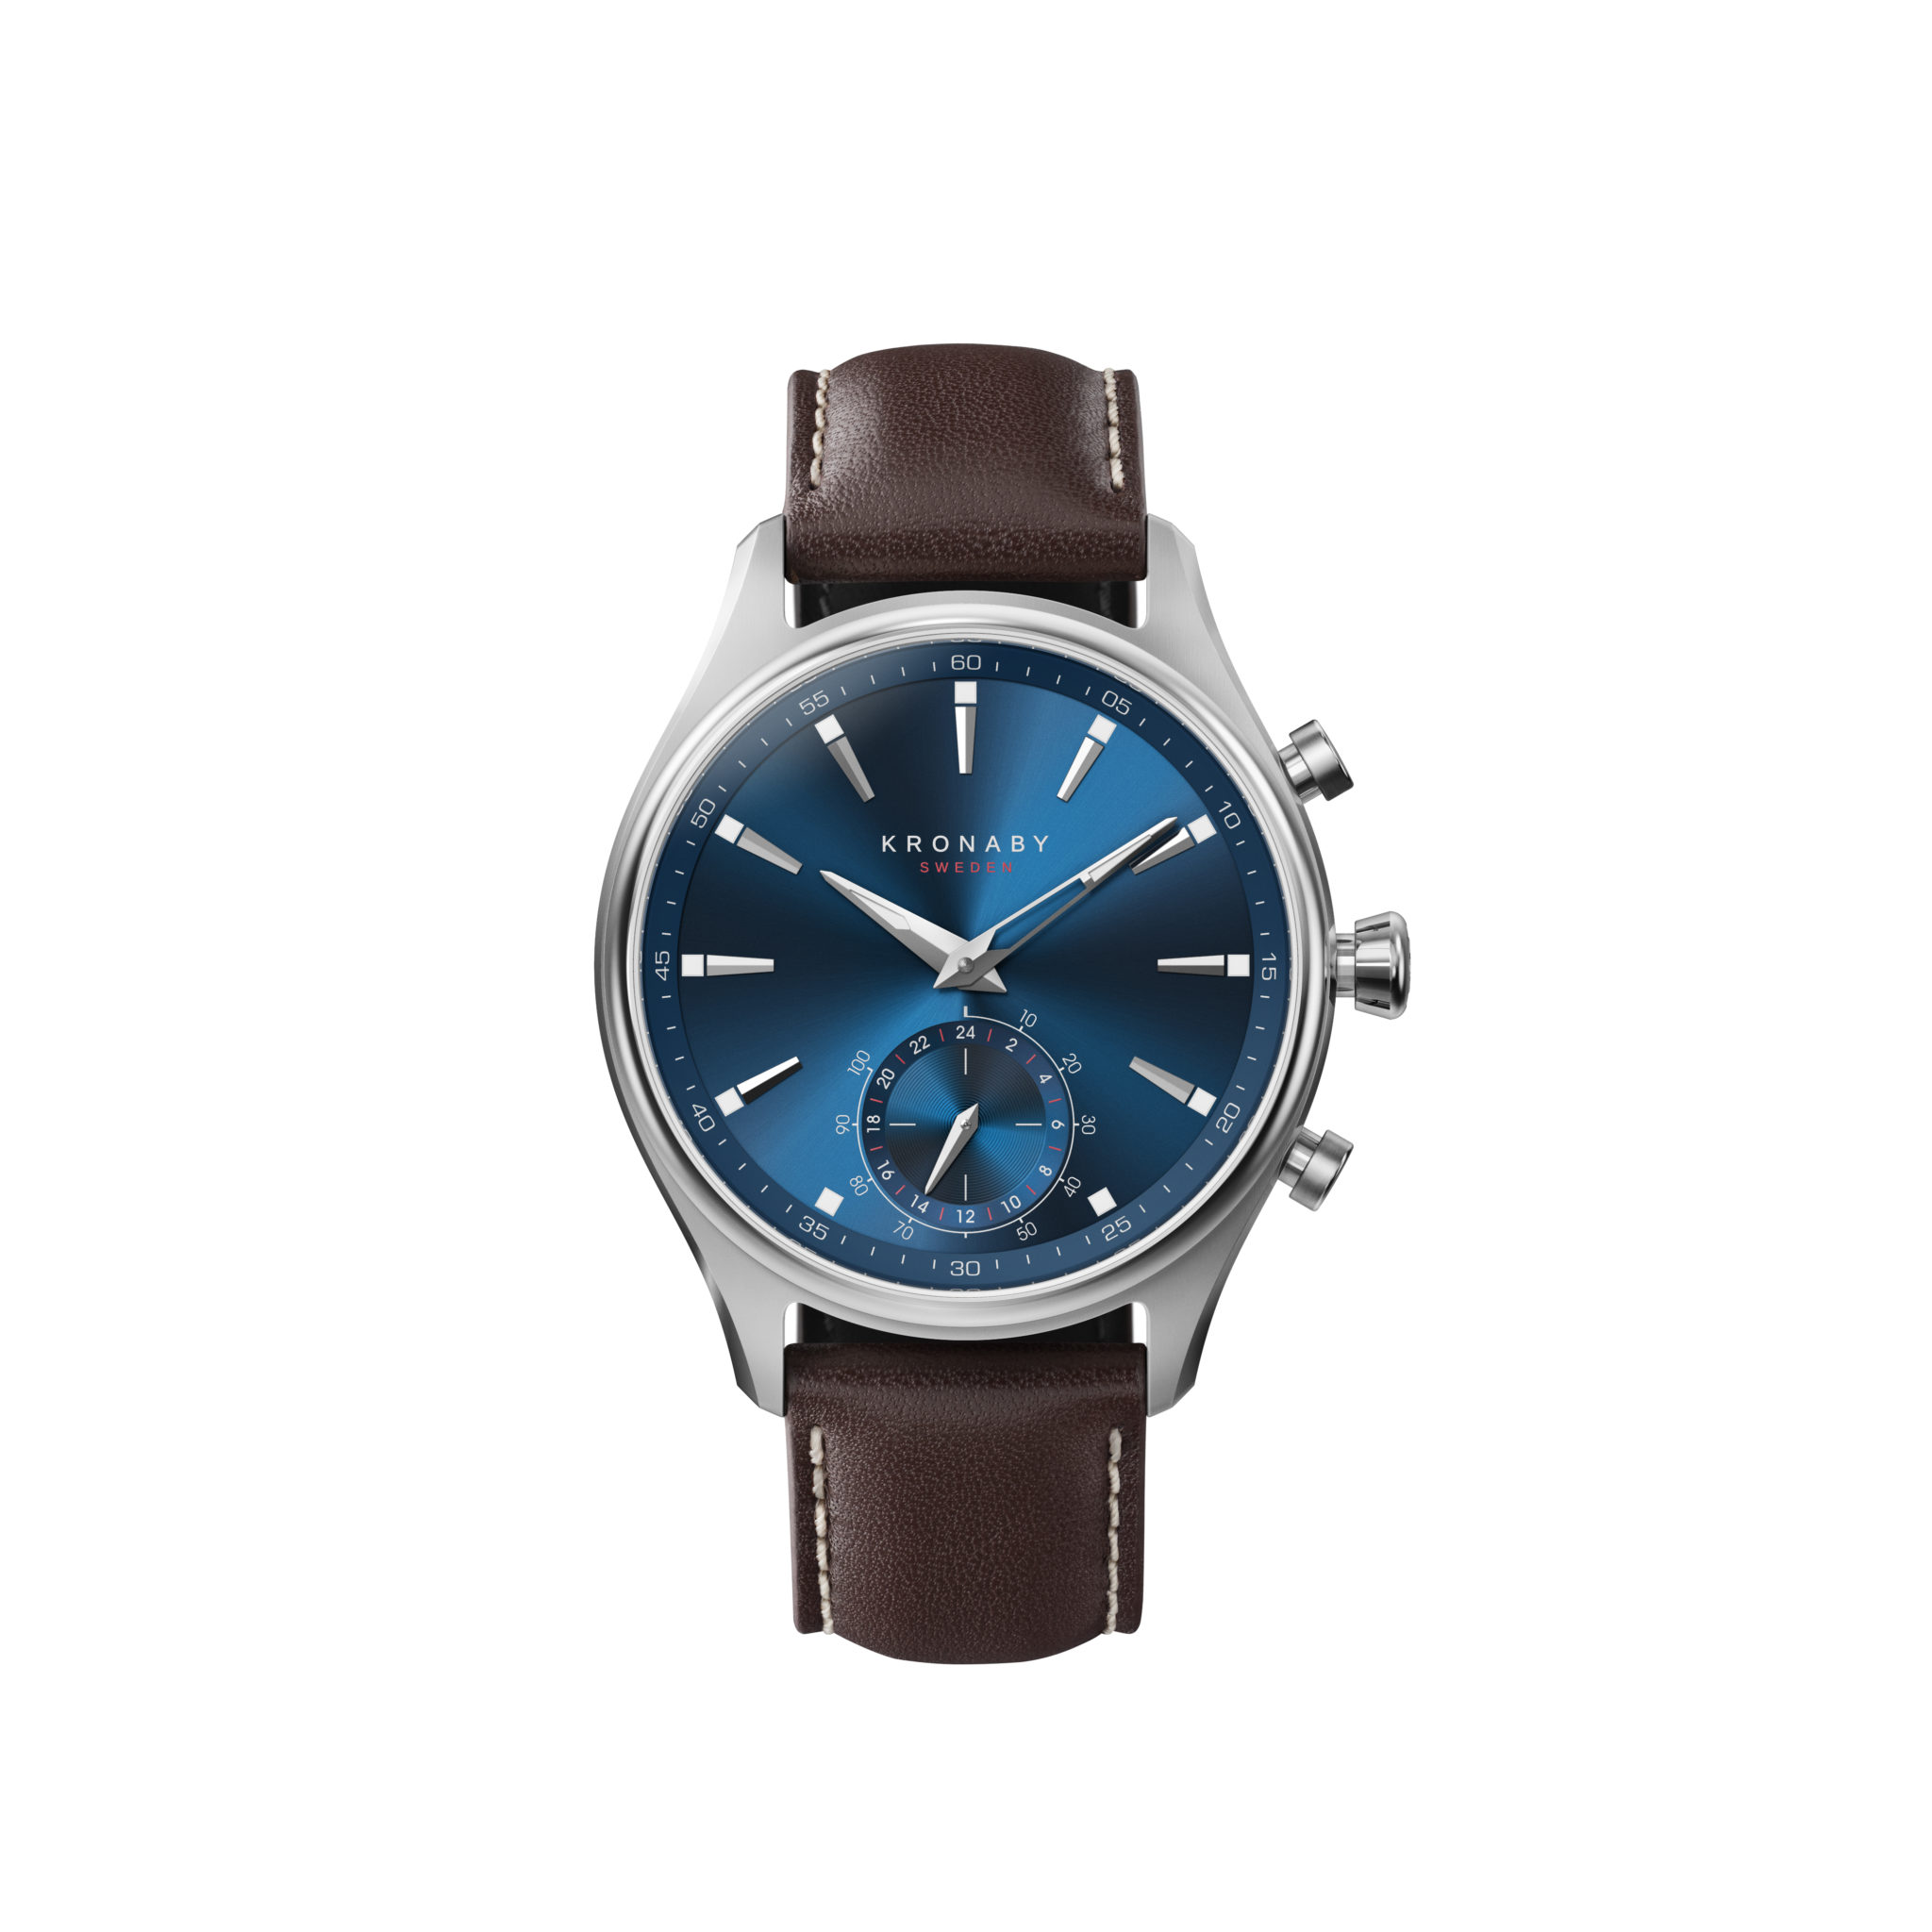 baselworld s which stylish new openly to this regular make comes best look smartwatches but watch that with from hybrids trying hypegram another it like hybrid watches helvetica mondaine article admits here